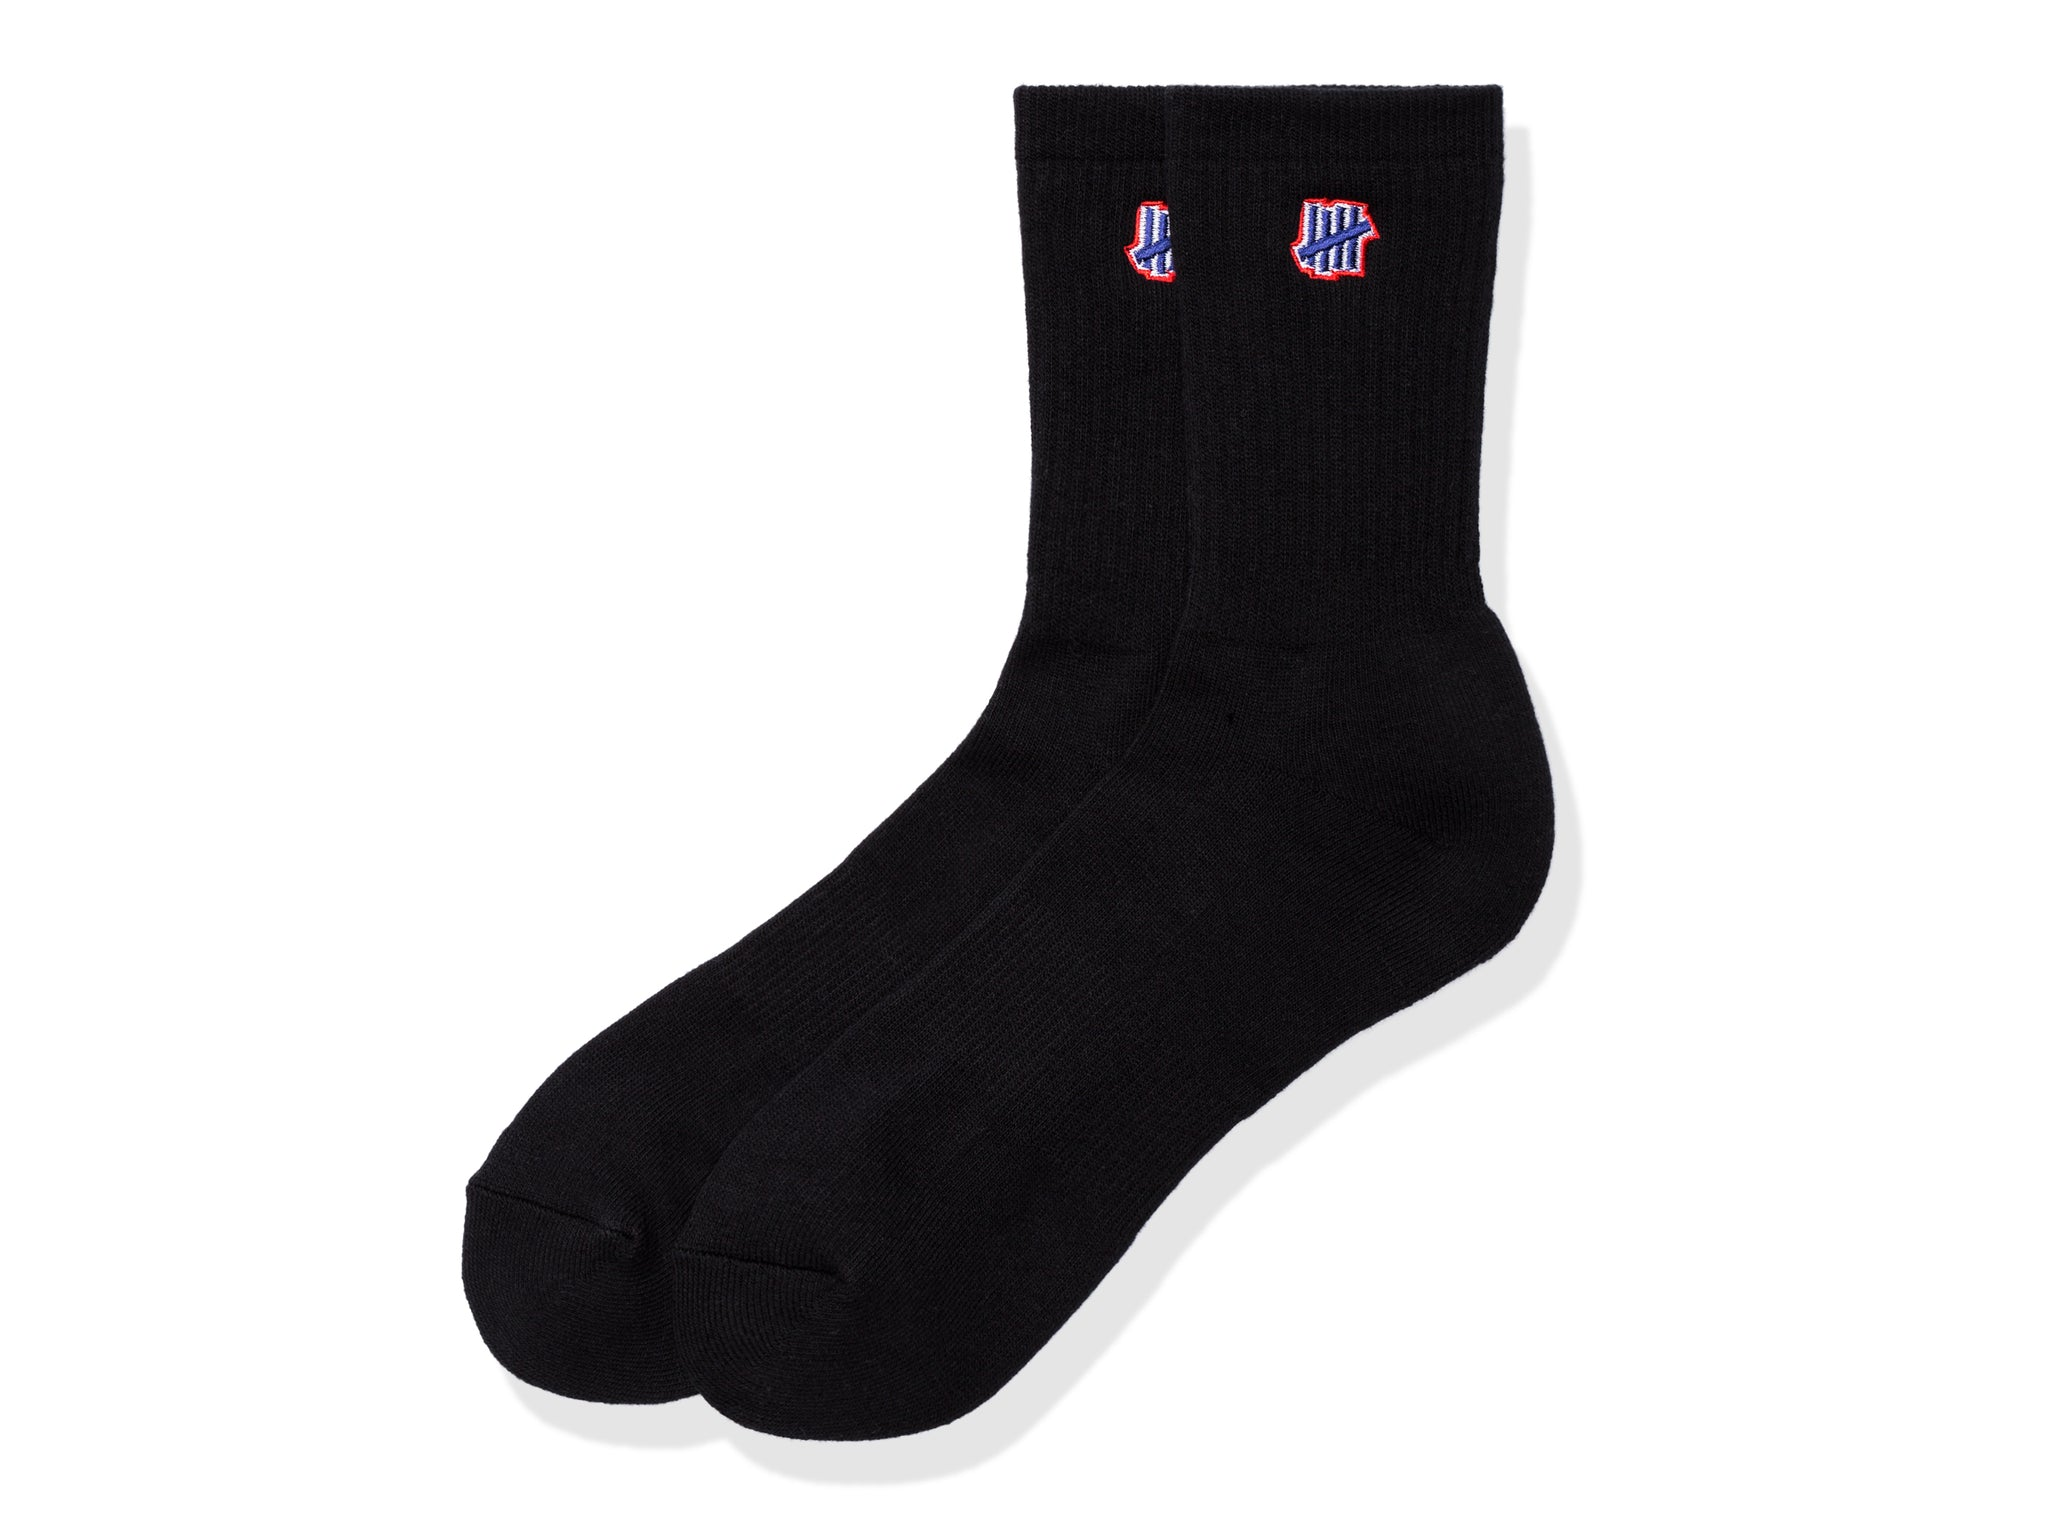 UNDEFEATED 5 STRIKE SOCK - CREW